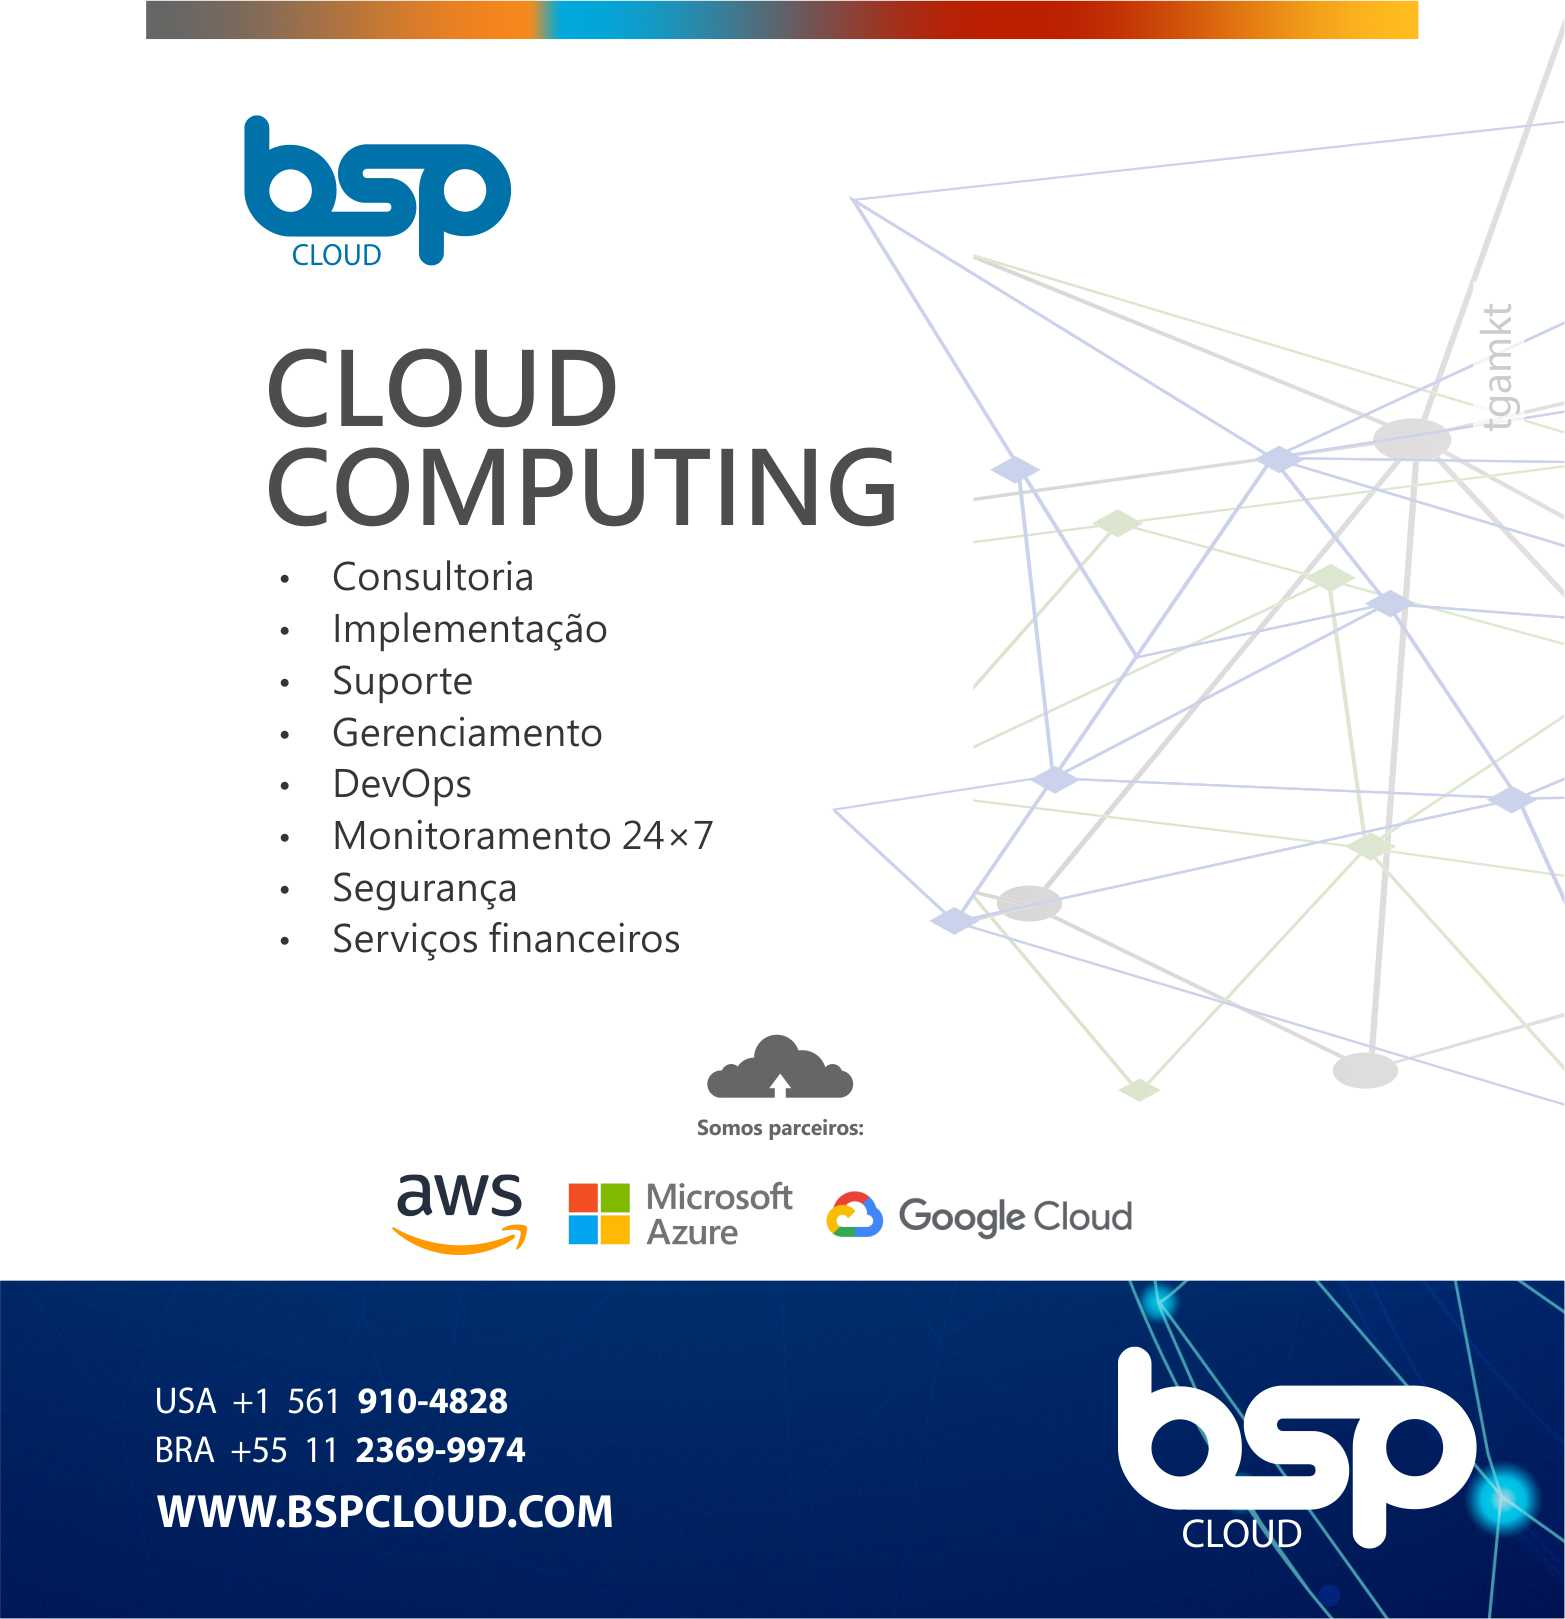 Bsp Cloud Institucional